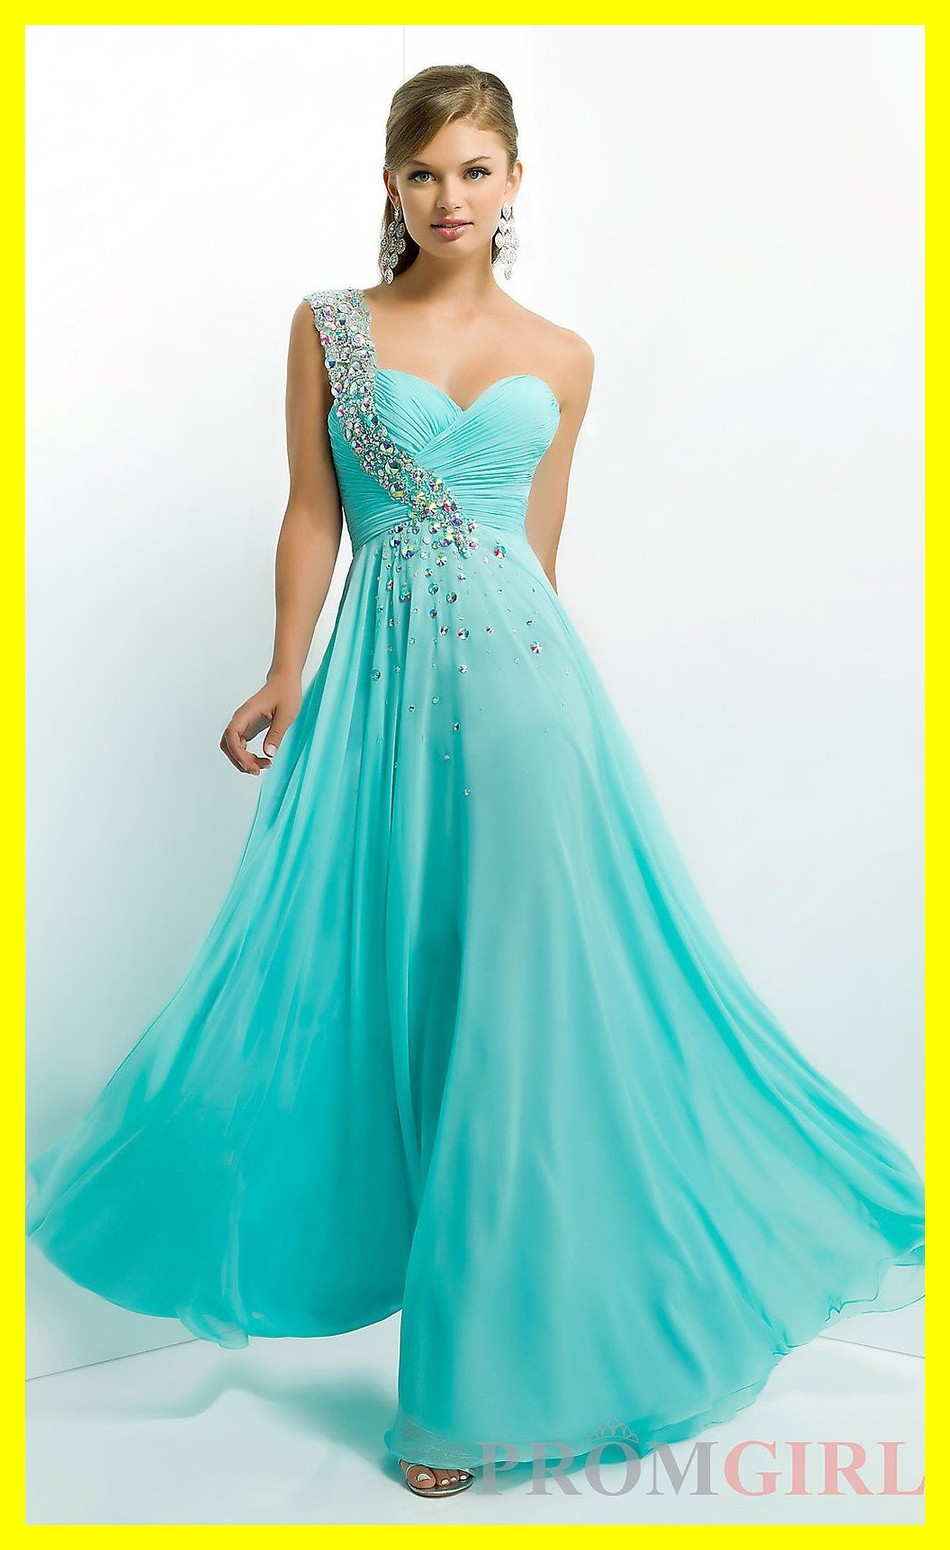 Designer Bridesmaid Dresses Online Australia - Wedding Guest Dresses